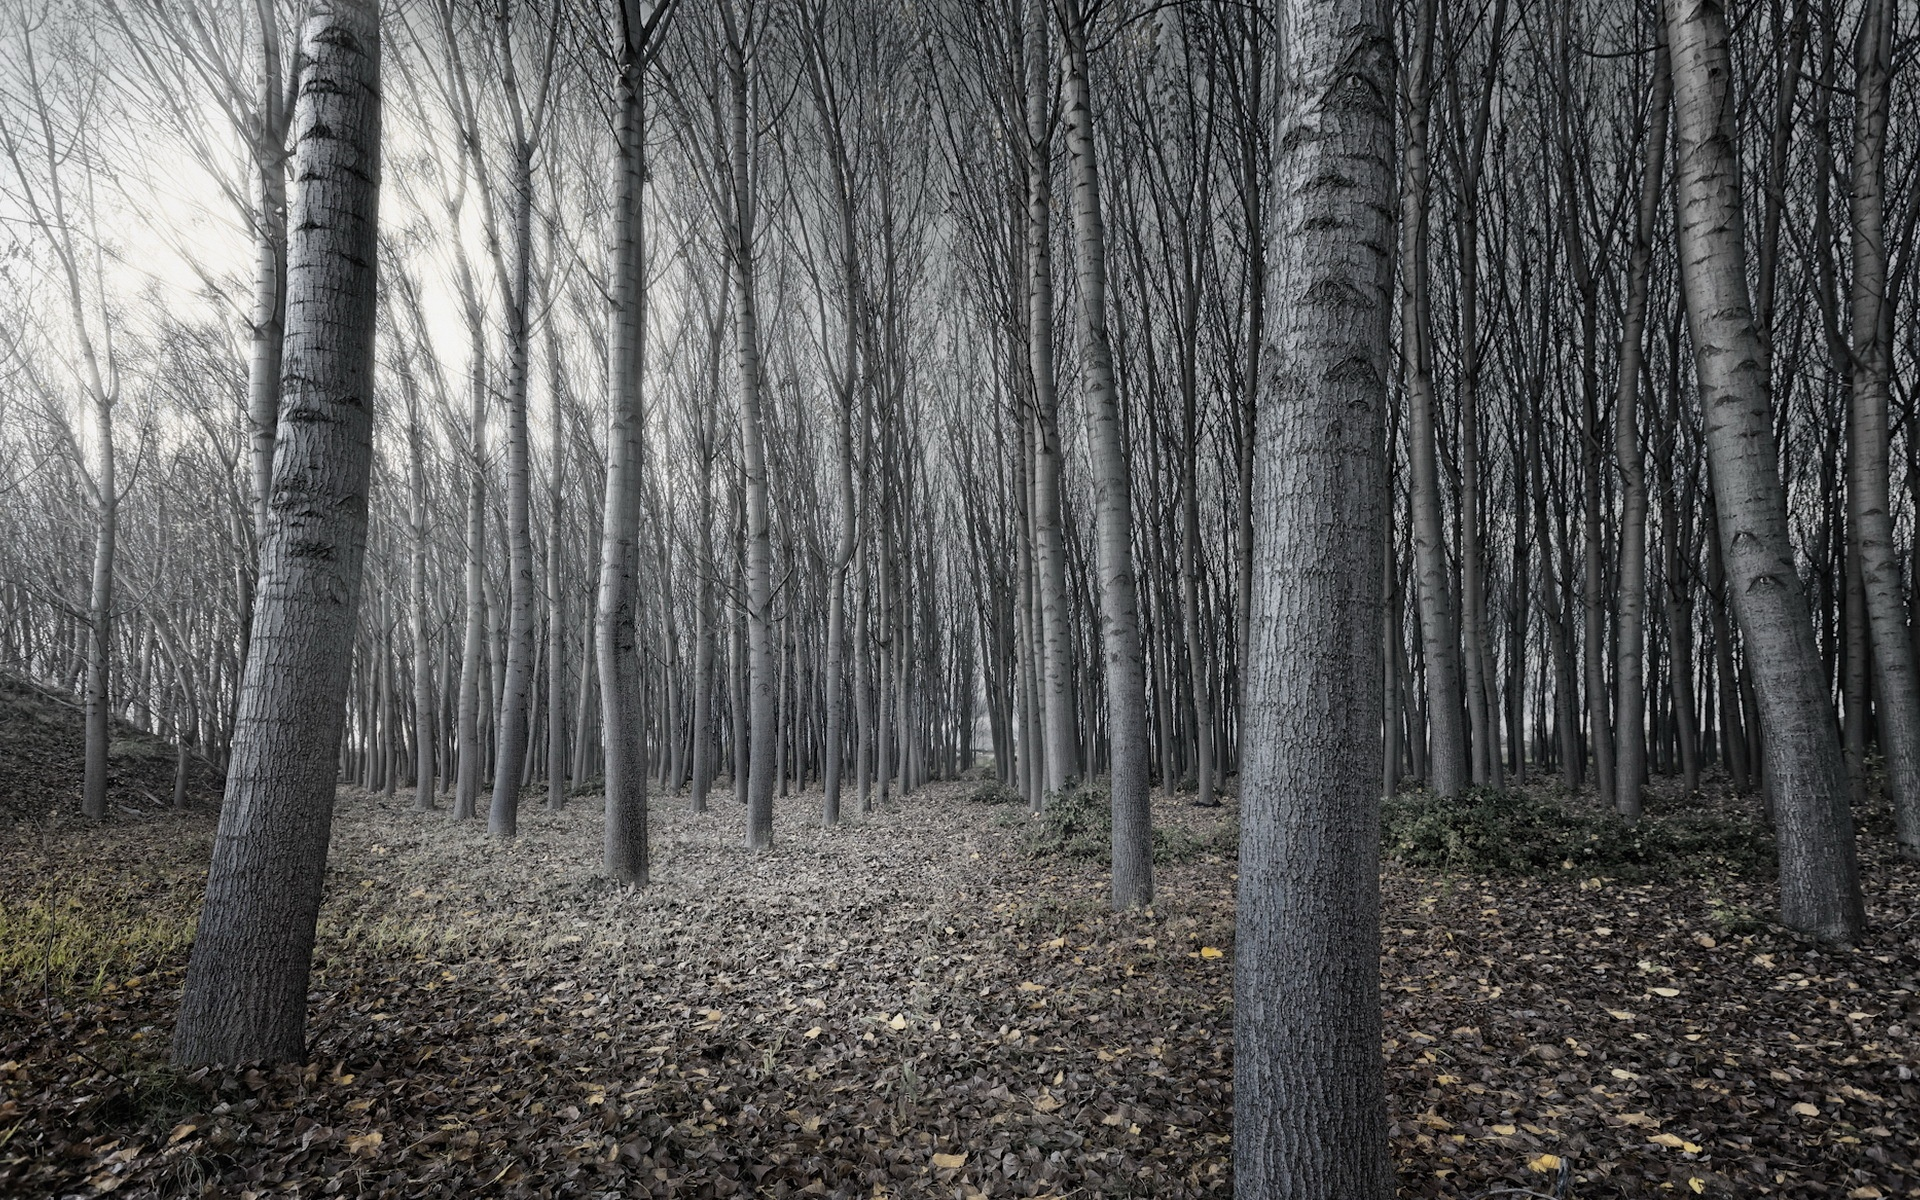 Black And White Tree Forest Wallpapers   1920x1200   1419456 1920x1200